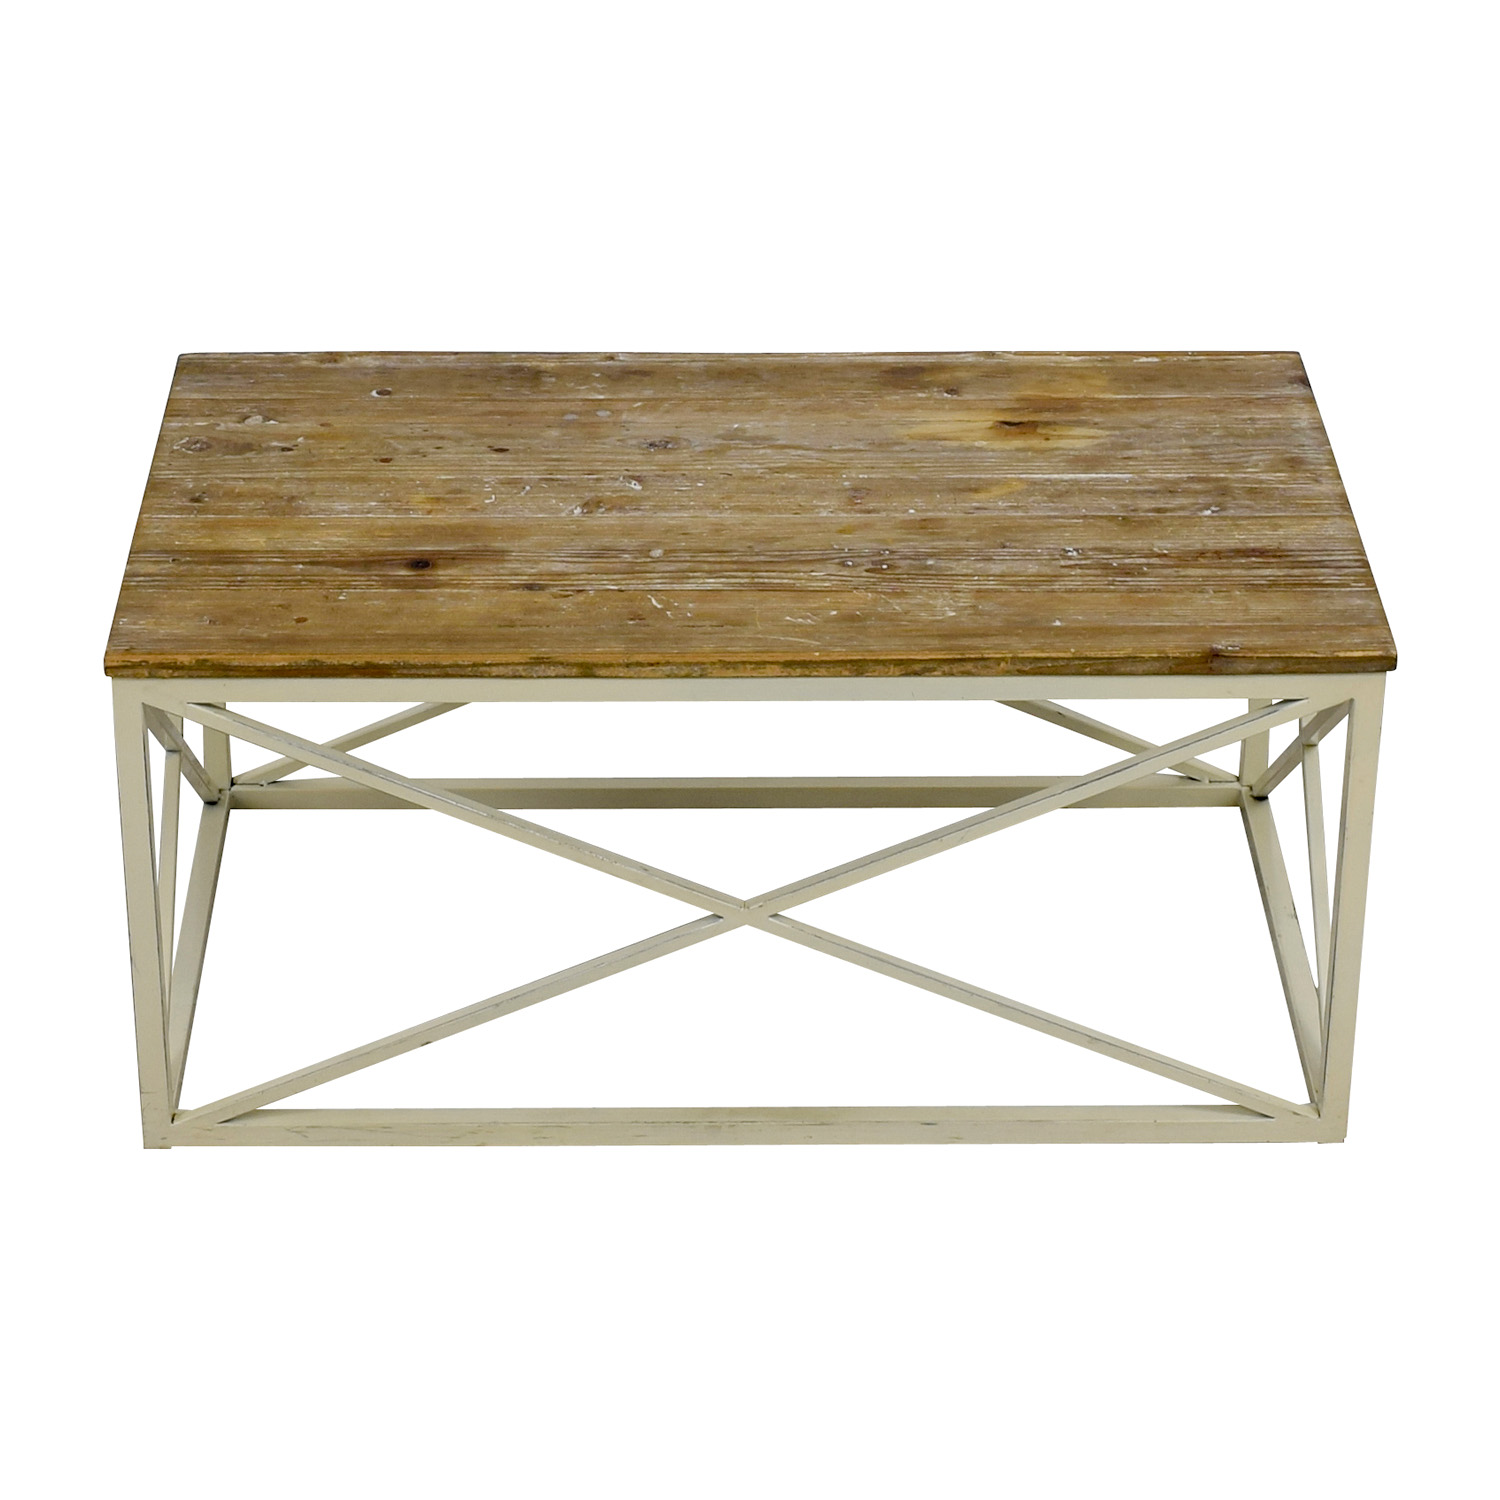 Wayfair Wayfair Wooden and Metal Coffee table nj